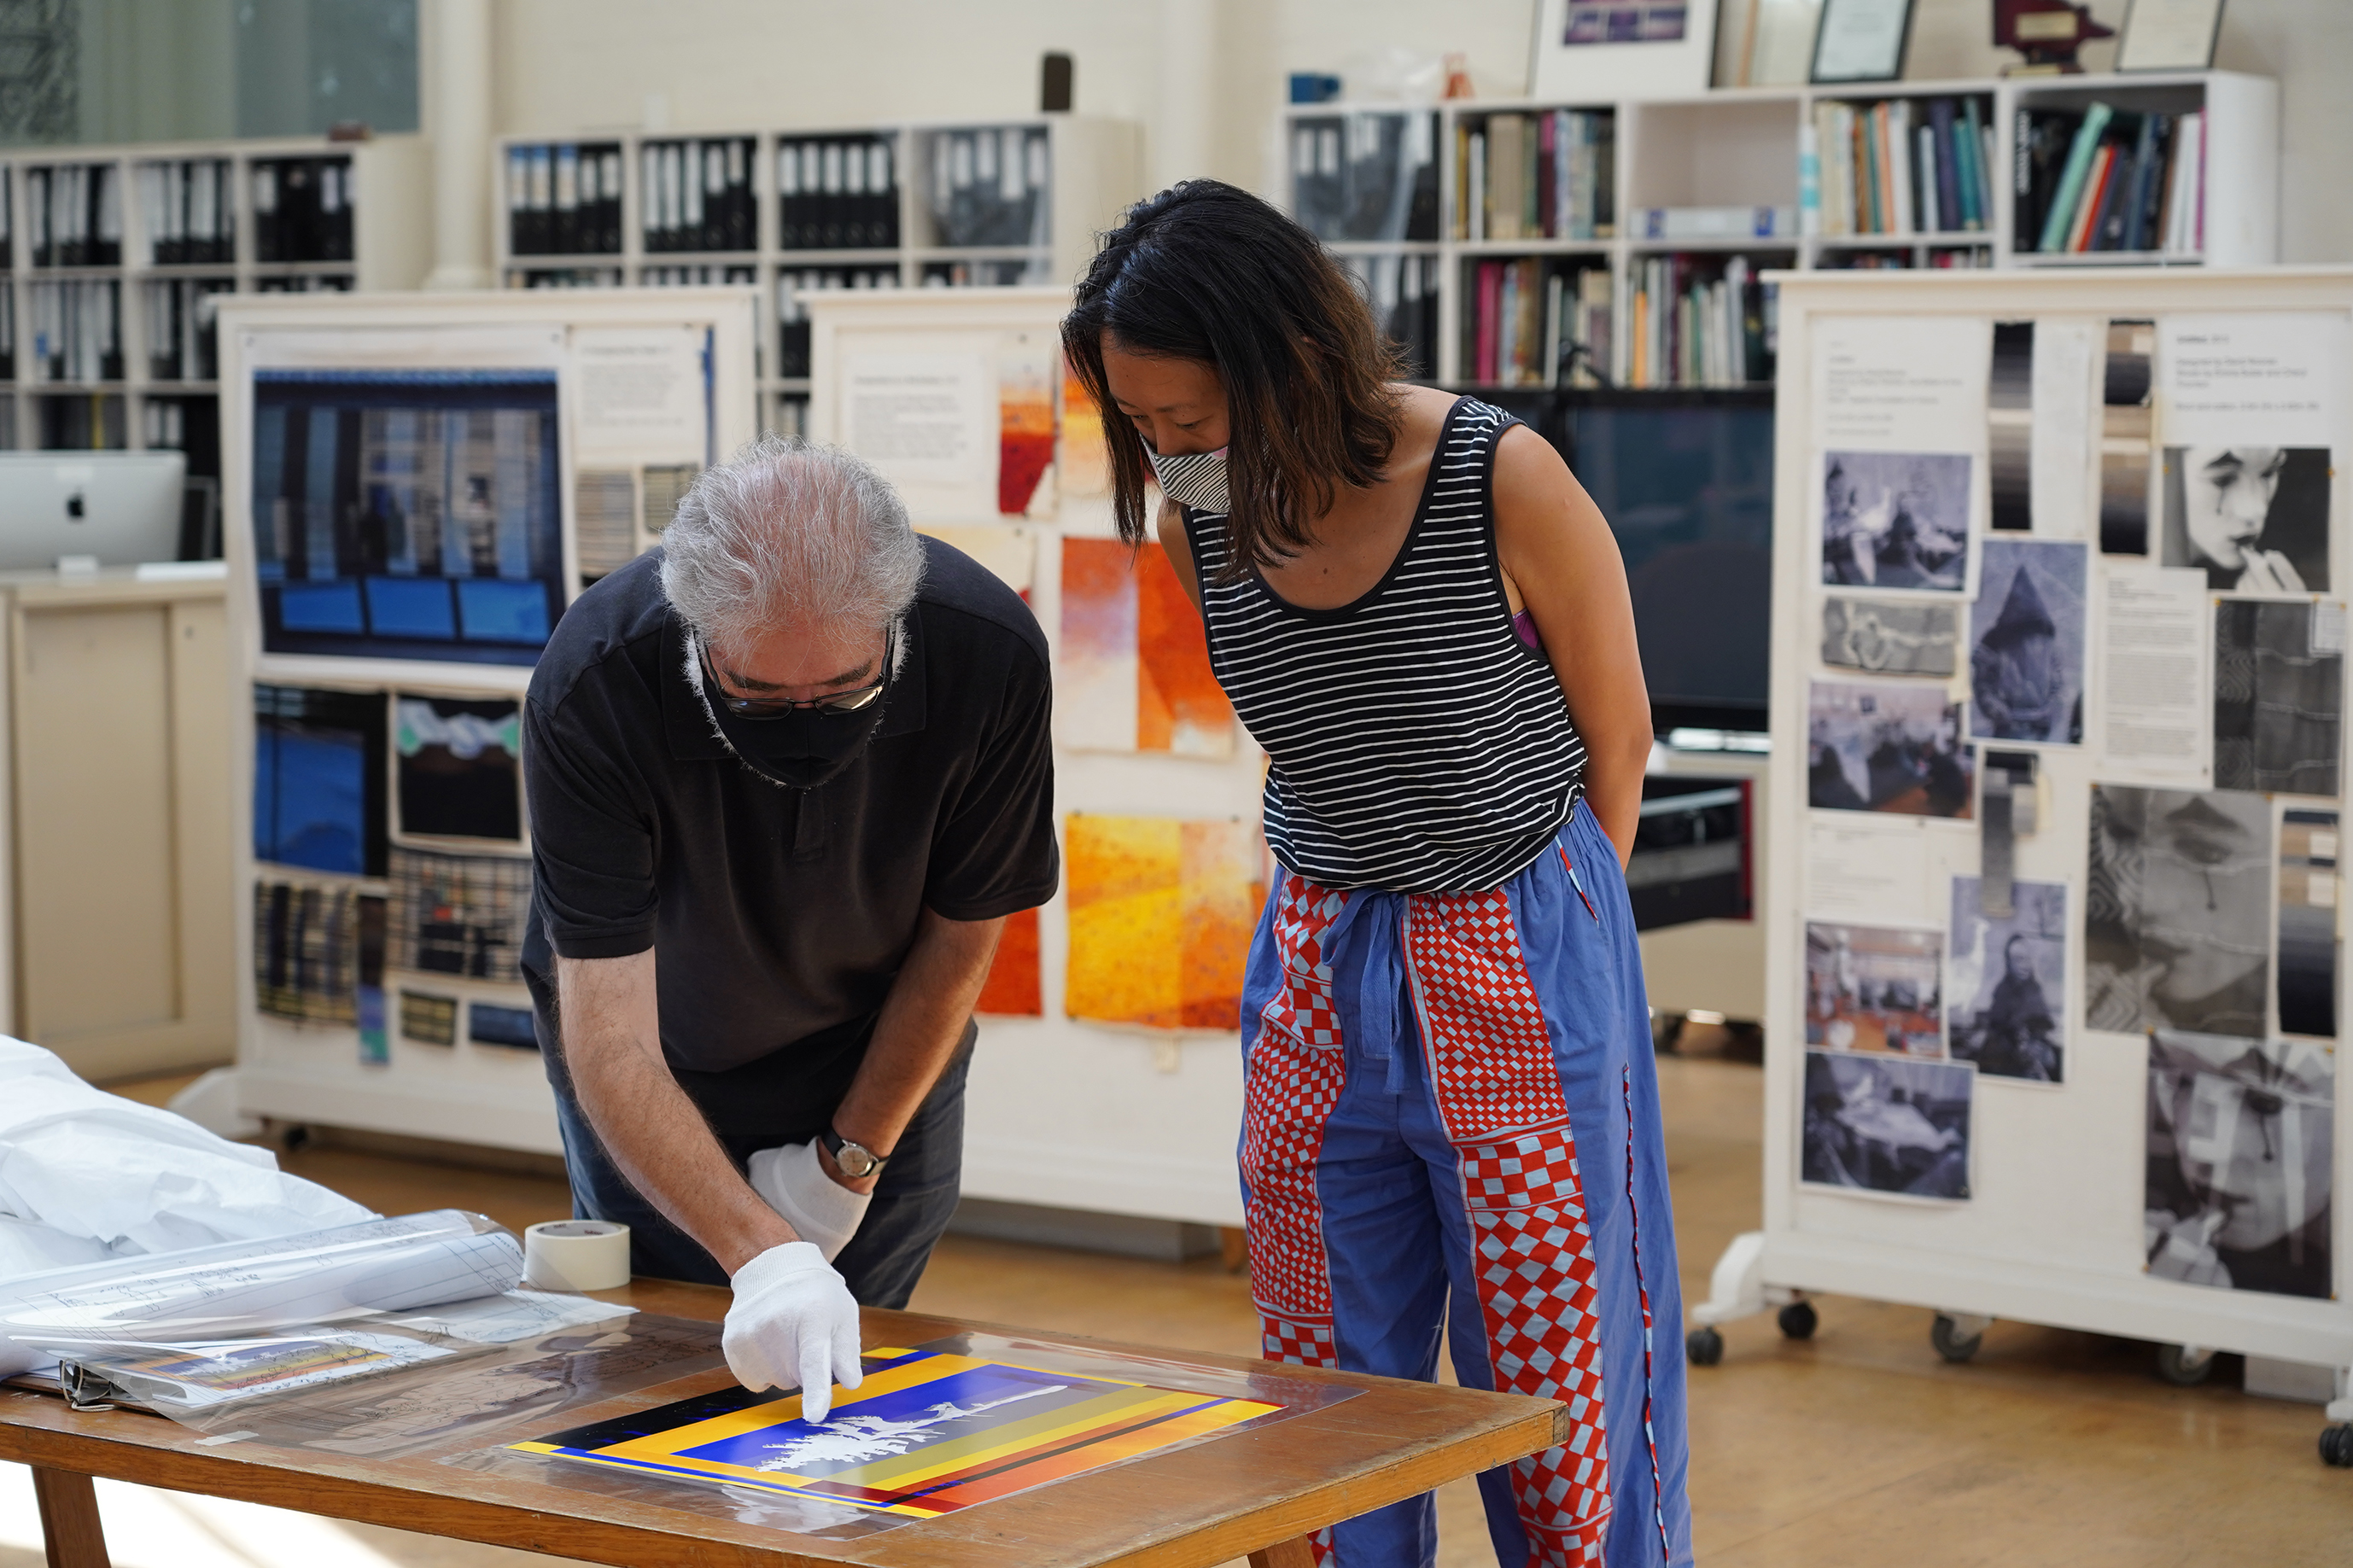 ATW weaver Tim Gresham & artist Eugenia Lim discussing the 'Future Fossils (Old Tjikko)' tapestry design at the ATW, 2021. Image: ATW.